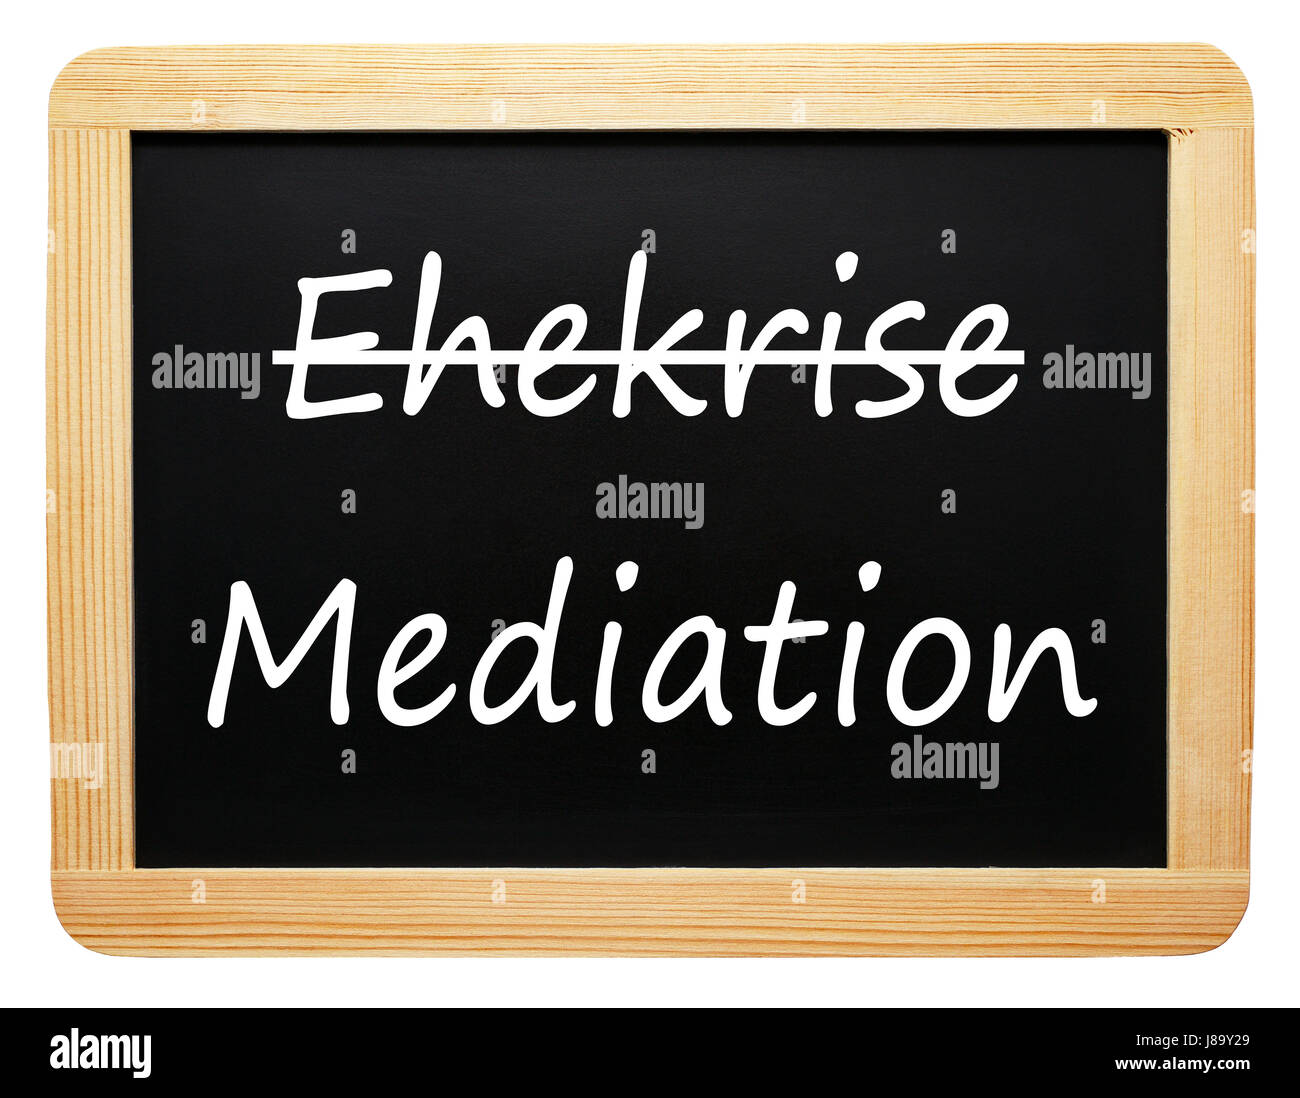 marital crisis and mediation - Stock Image